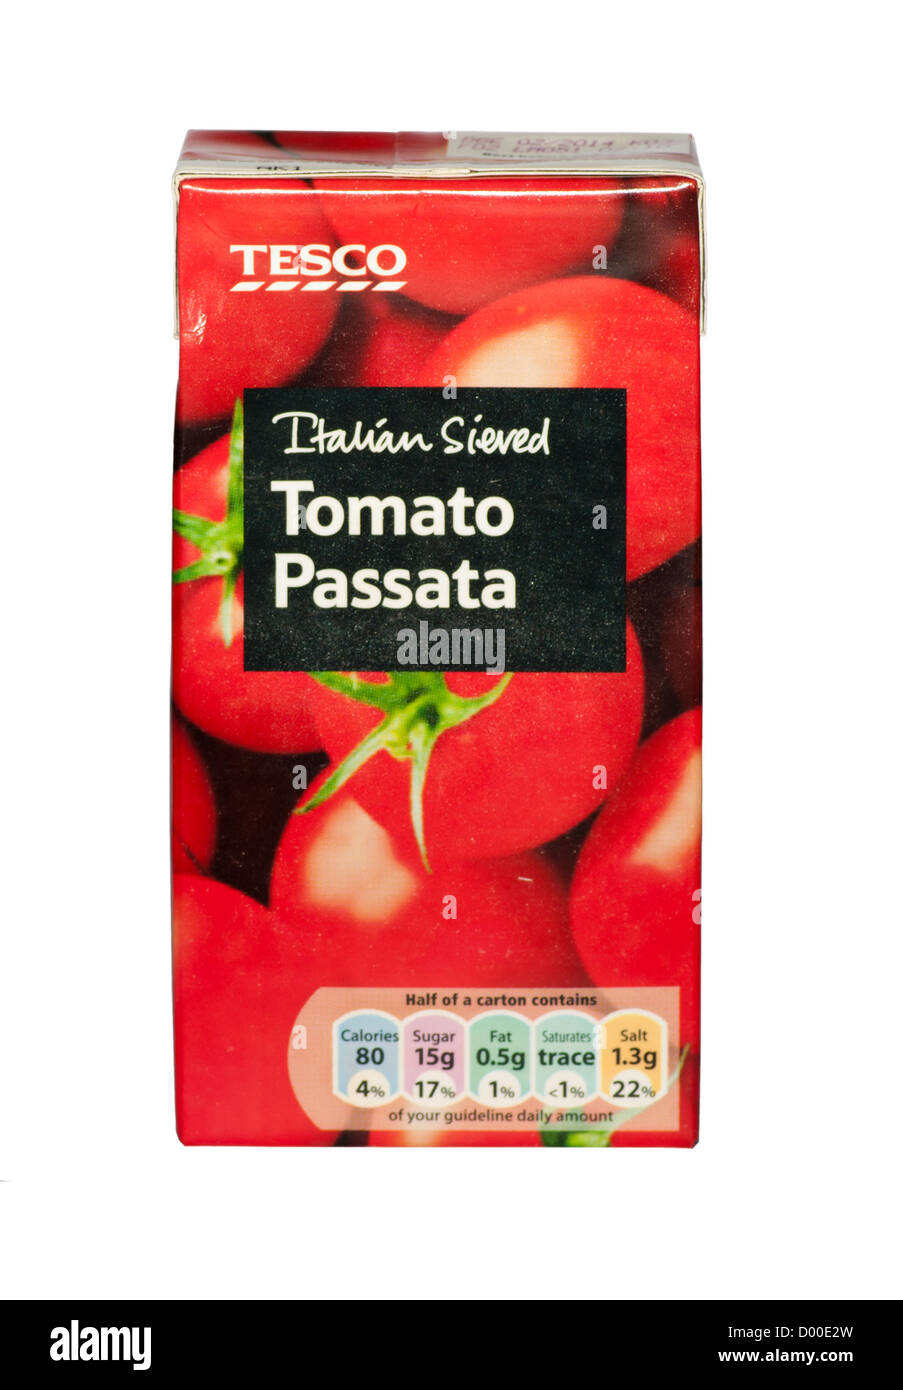 Tomato Passata Stock Photos Tomato Passata Stock Images